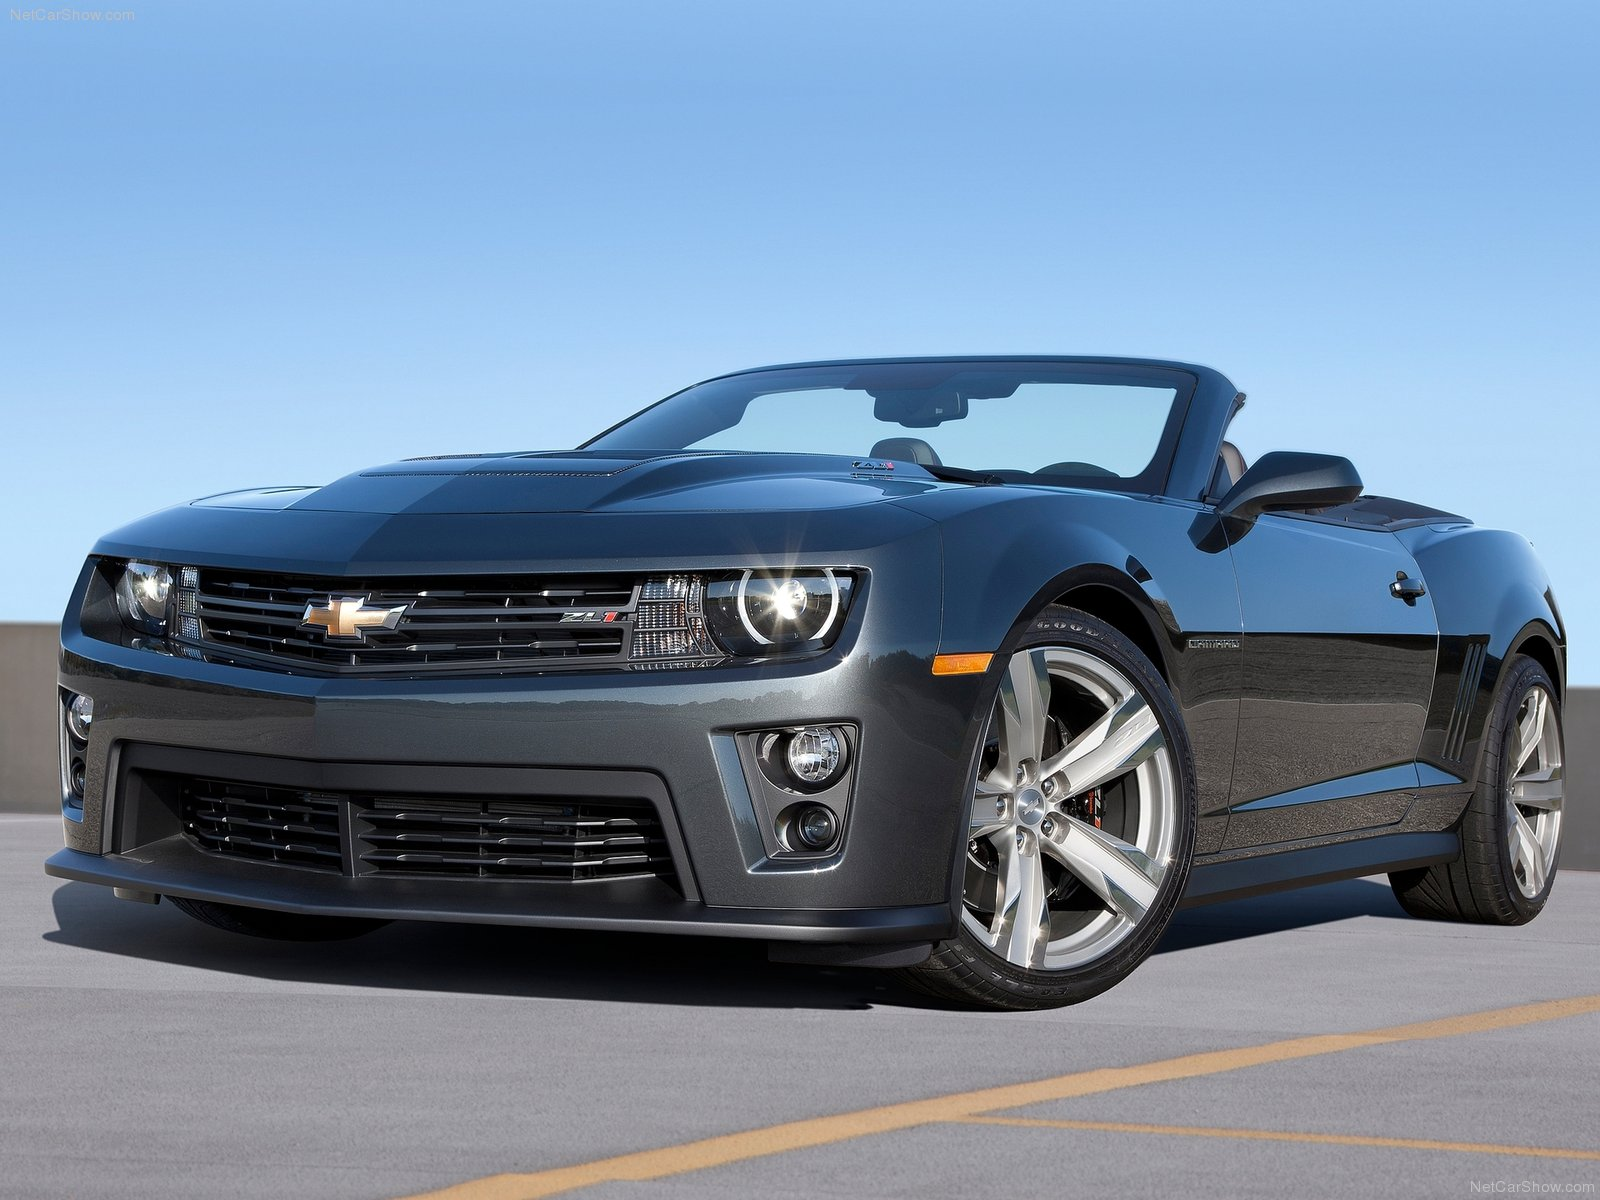 Chevrolet Camaro ZL1 Convertible photo 85179